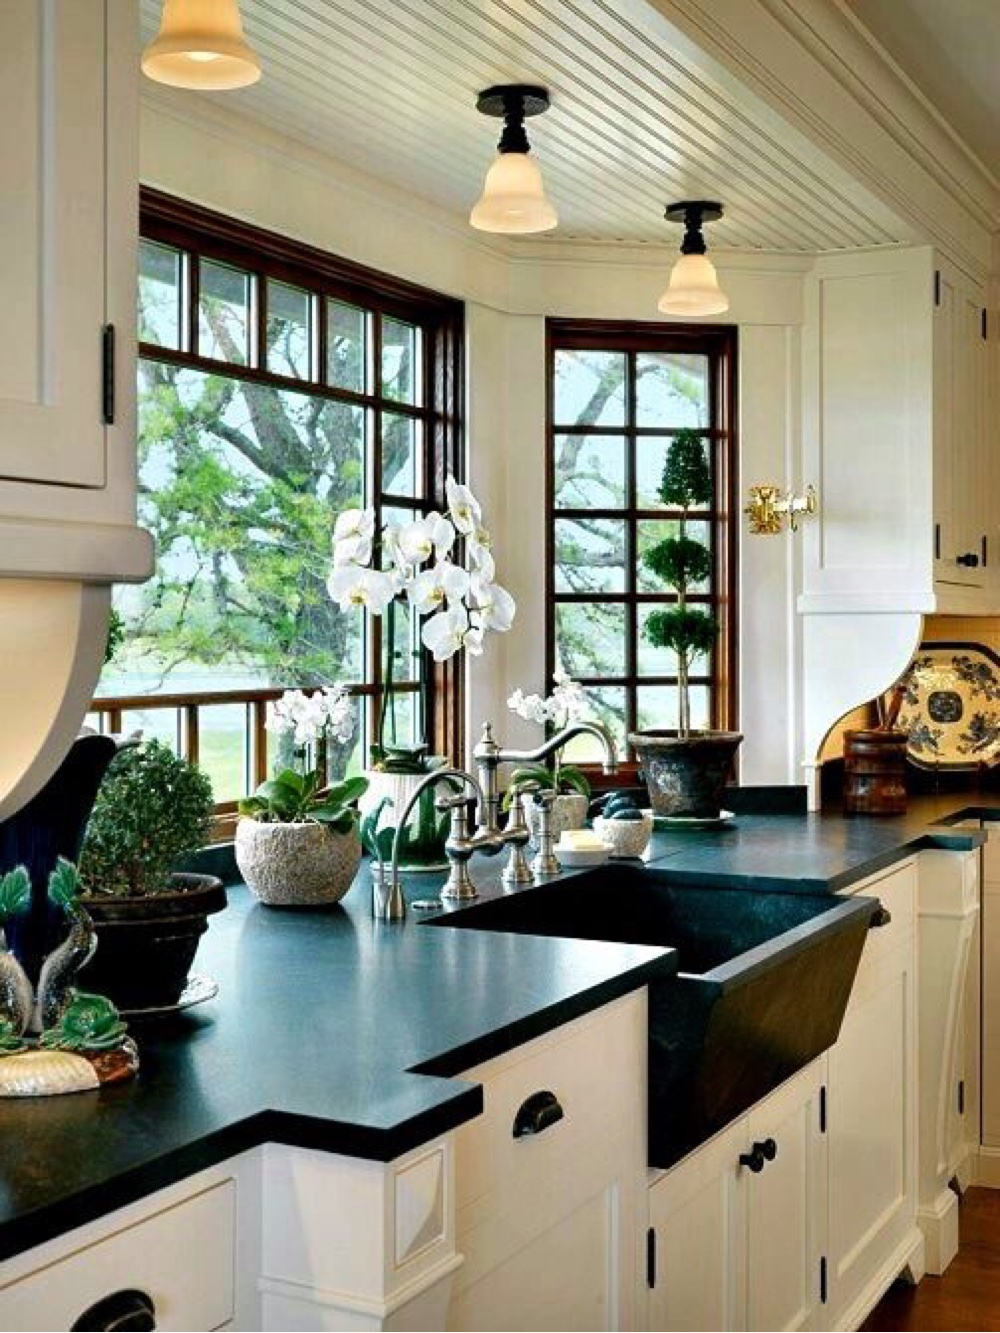 best rustic country kitchen design ideas country kitchen design ideas 5 Smart Detailing and Beautiful Plants Combine with Premium Fittings